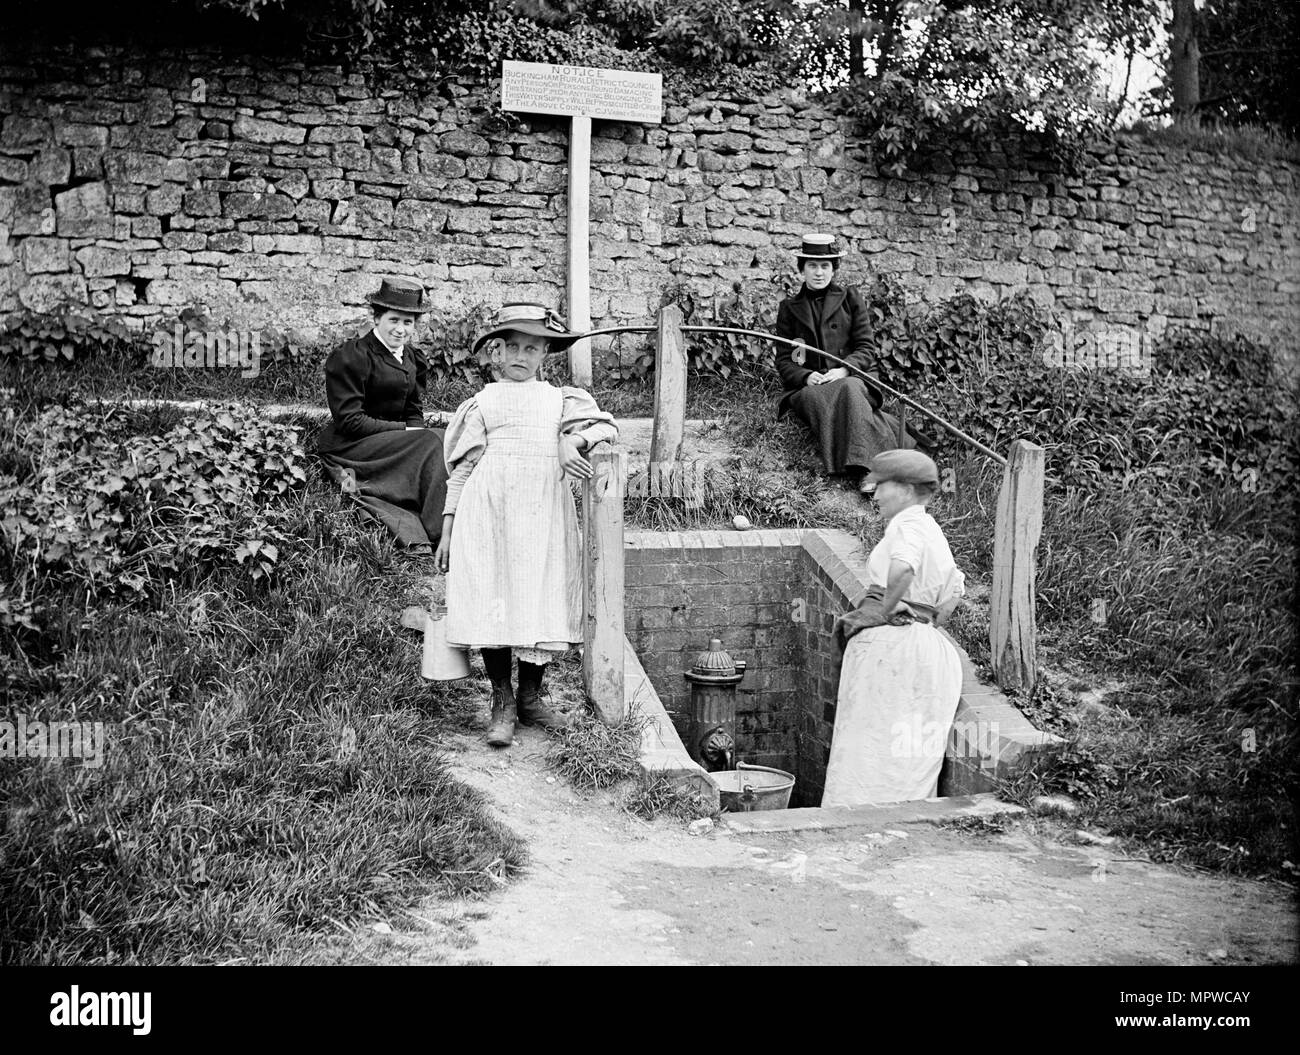 Collecting water from the village pump, Barton Hartshorn, Buckinghamshire, 1901. Artist: Alfred Newton & Sons. Stock Photo